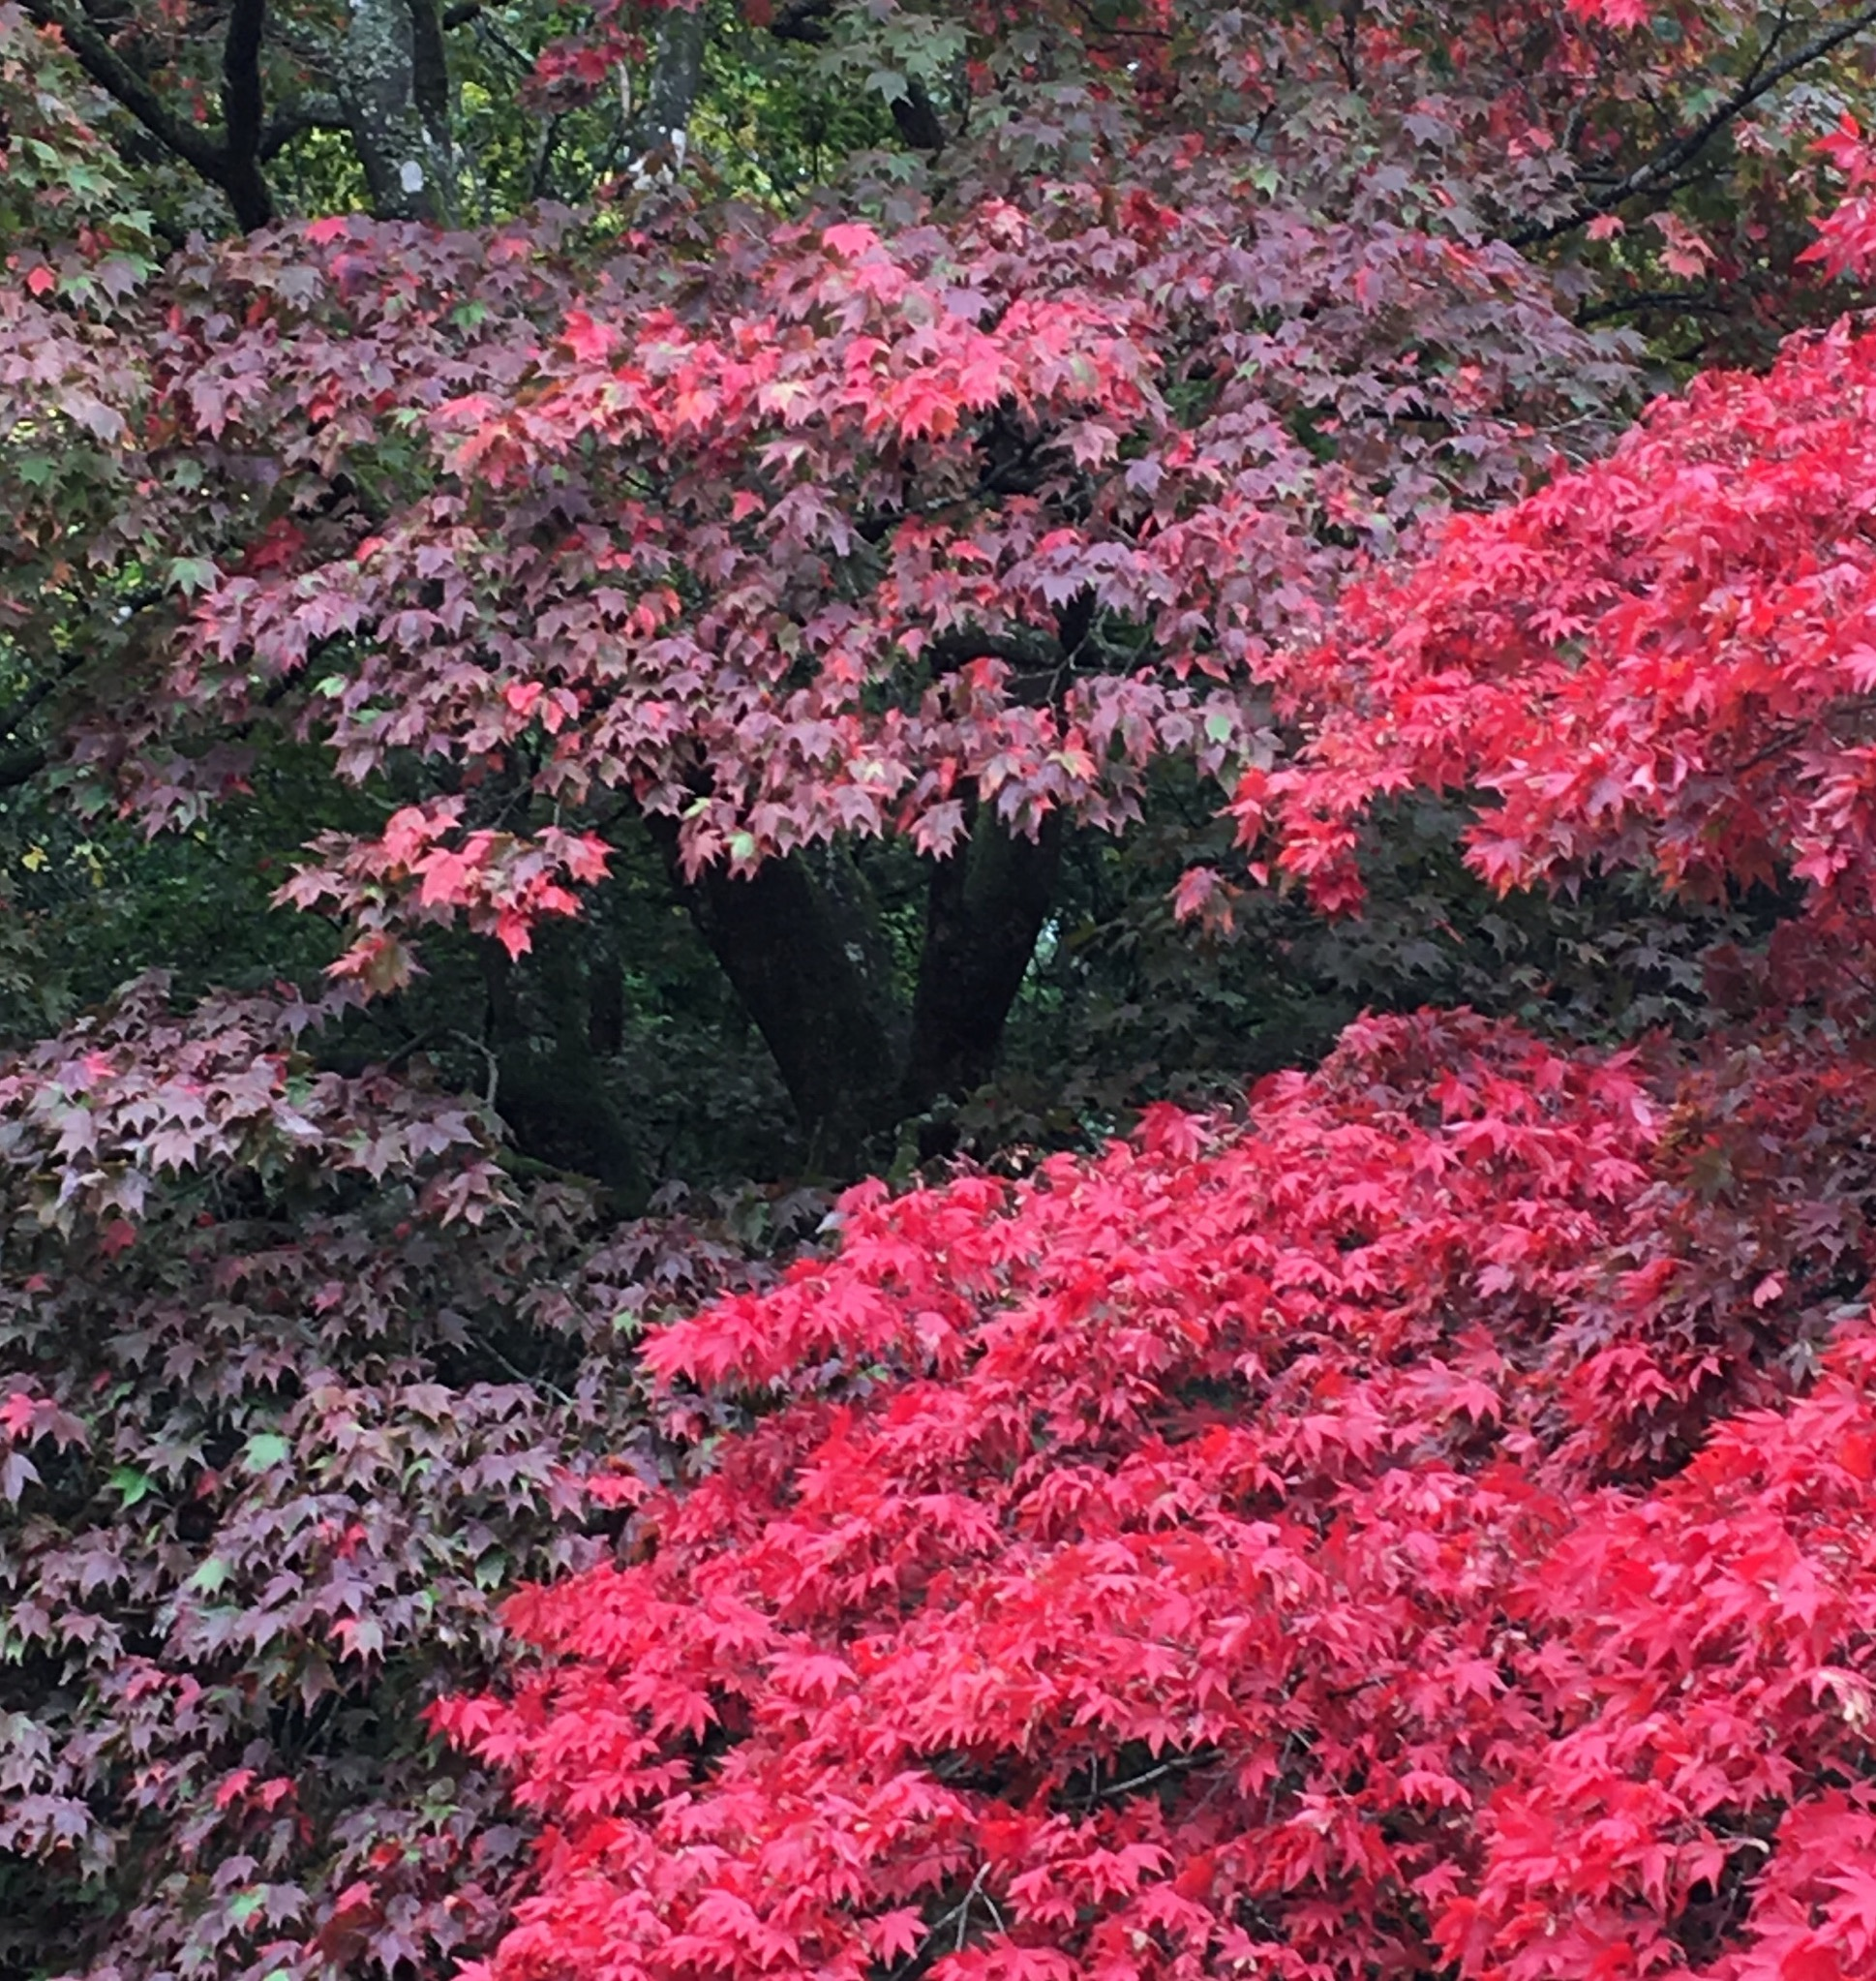 Best Plants ForAutumn Colour Red and pink autumnal foliage on acers